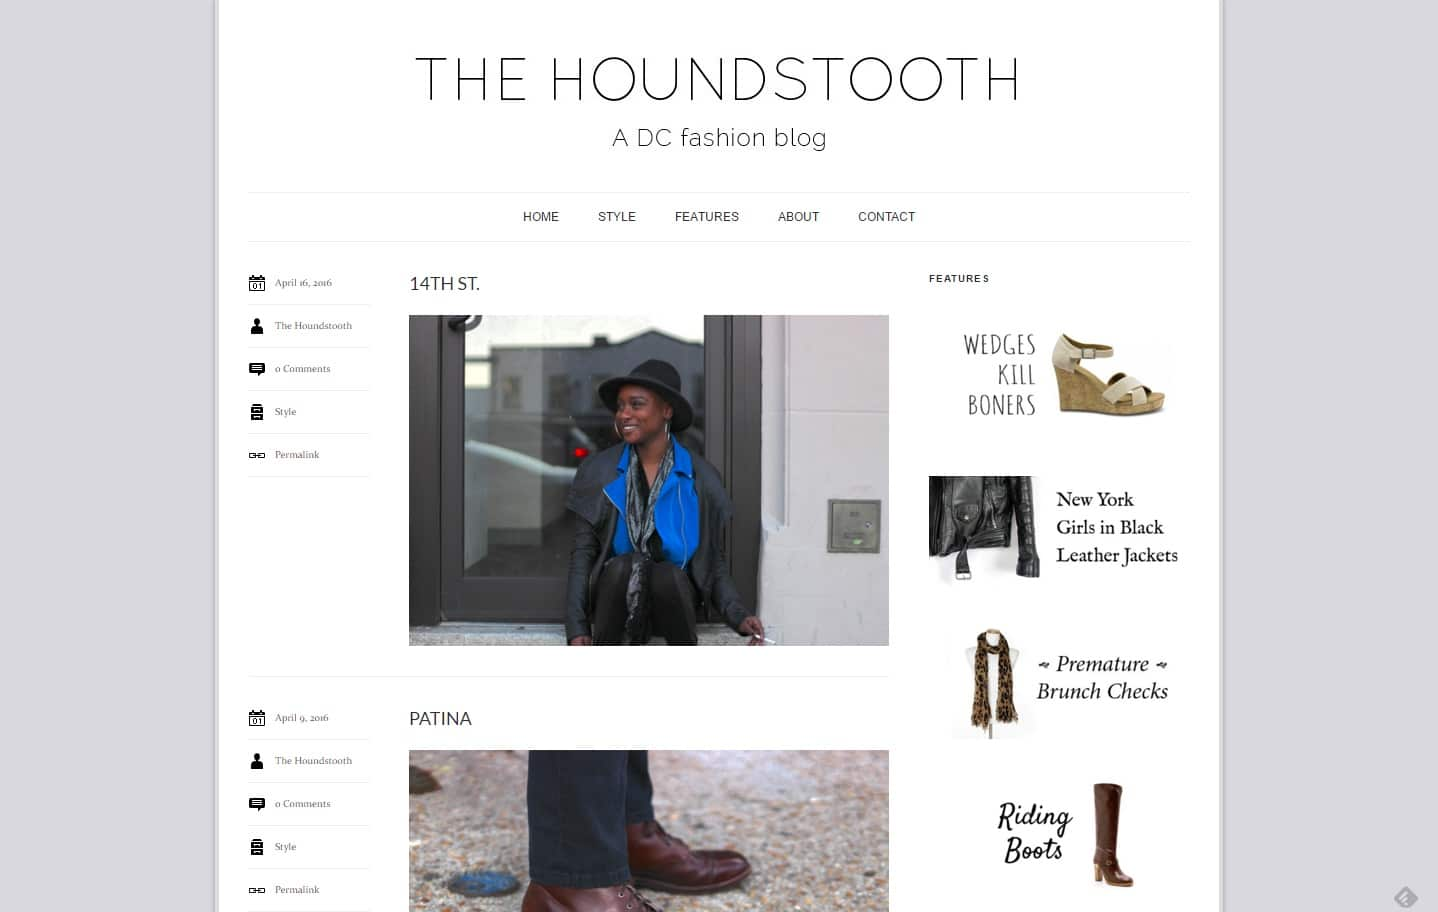 The Houndstooth A DC fashion blog